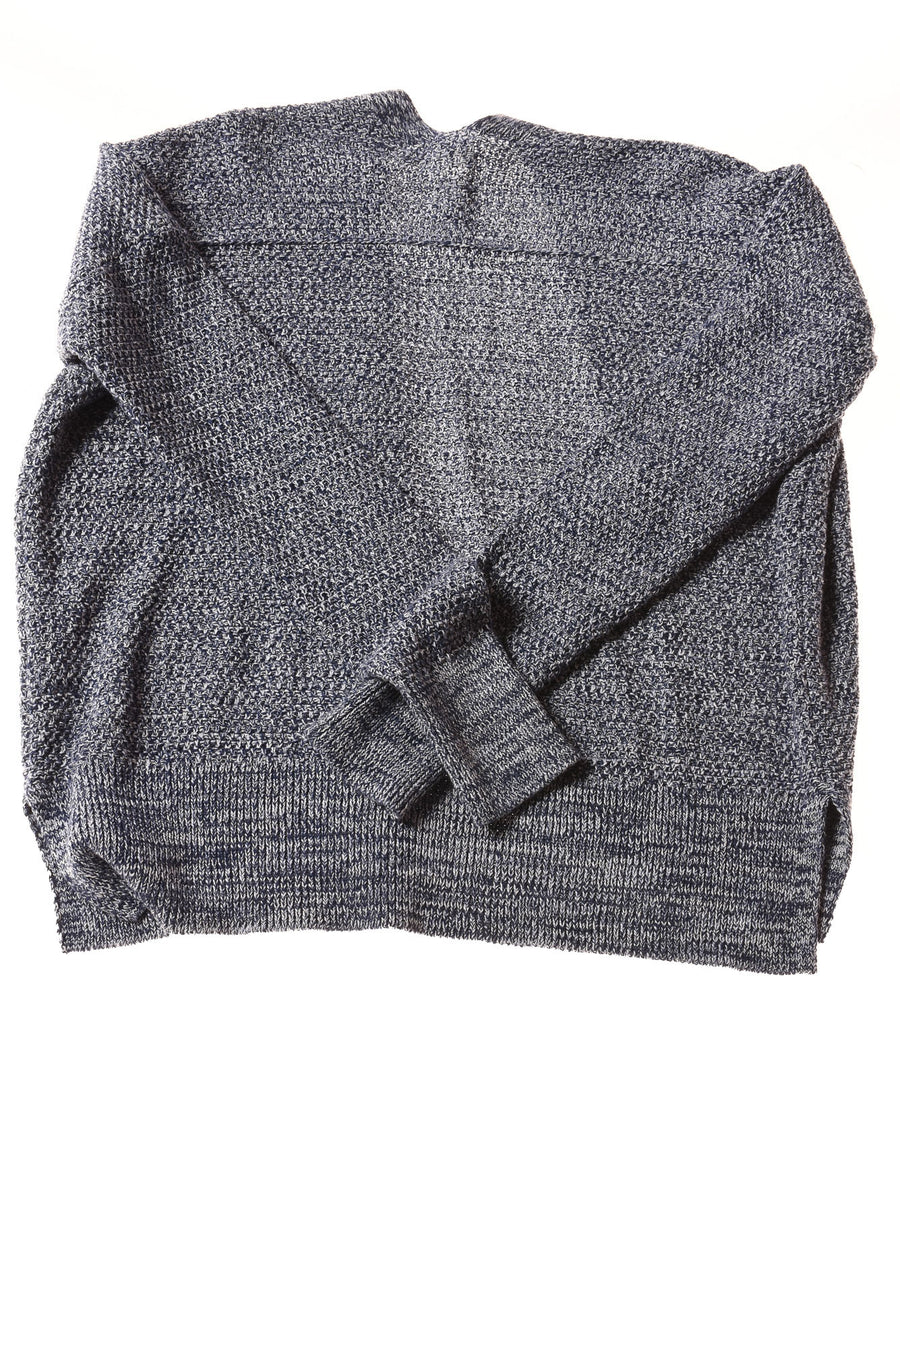 NEW Gap Women's Sweater X-Small Blue